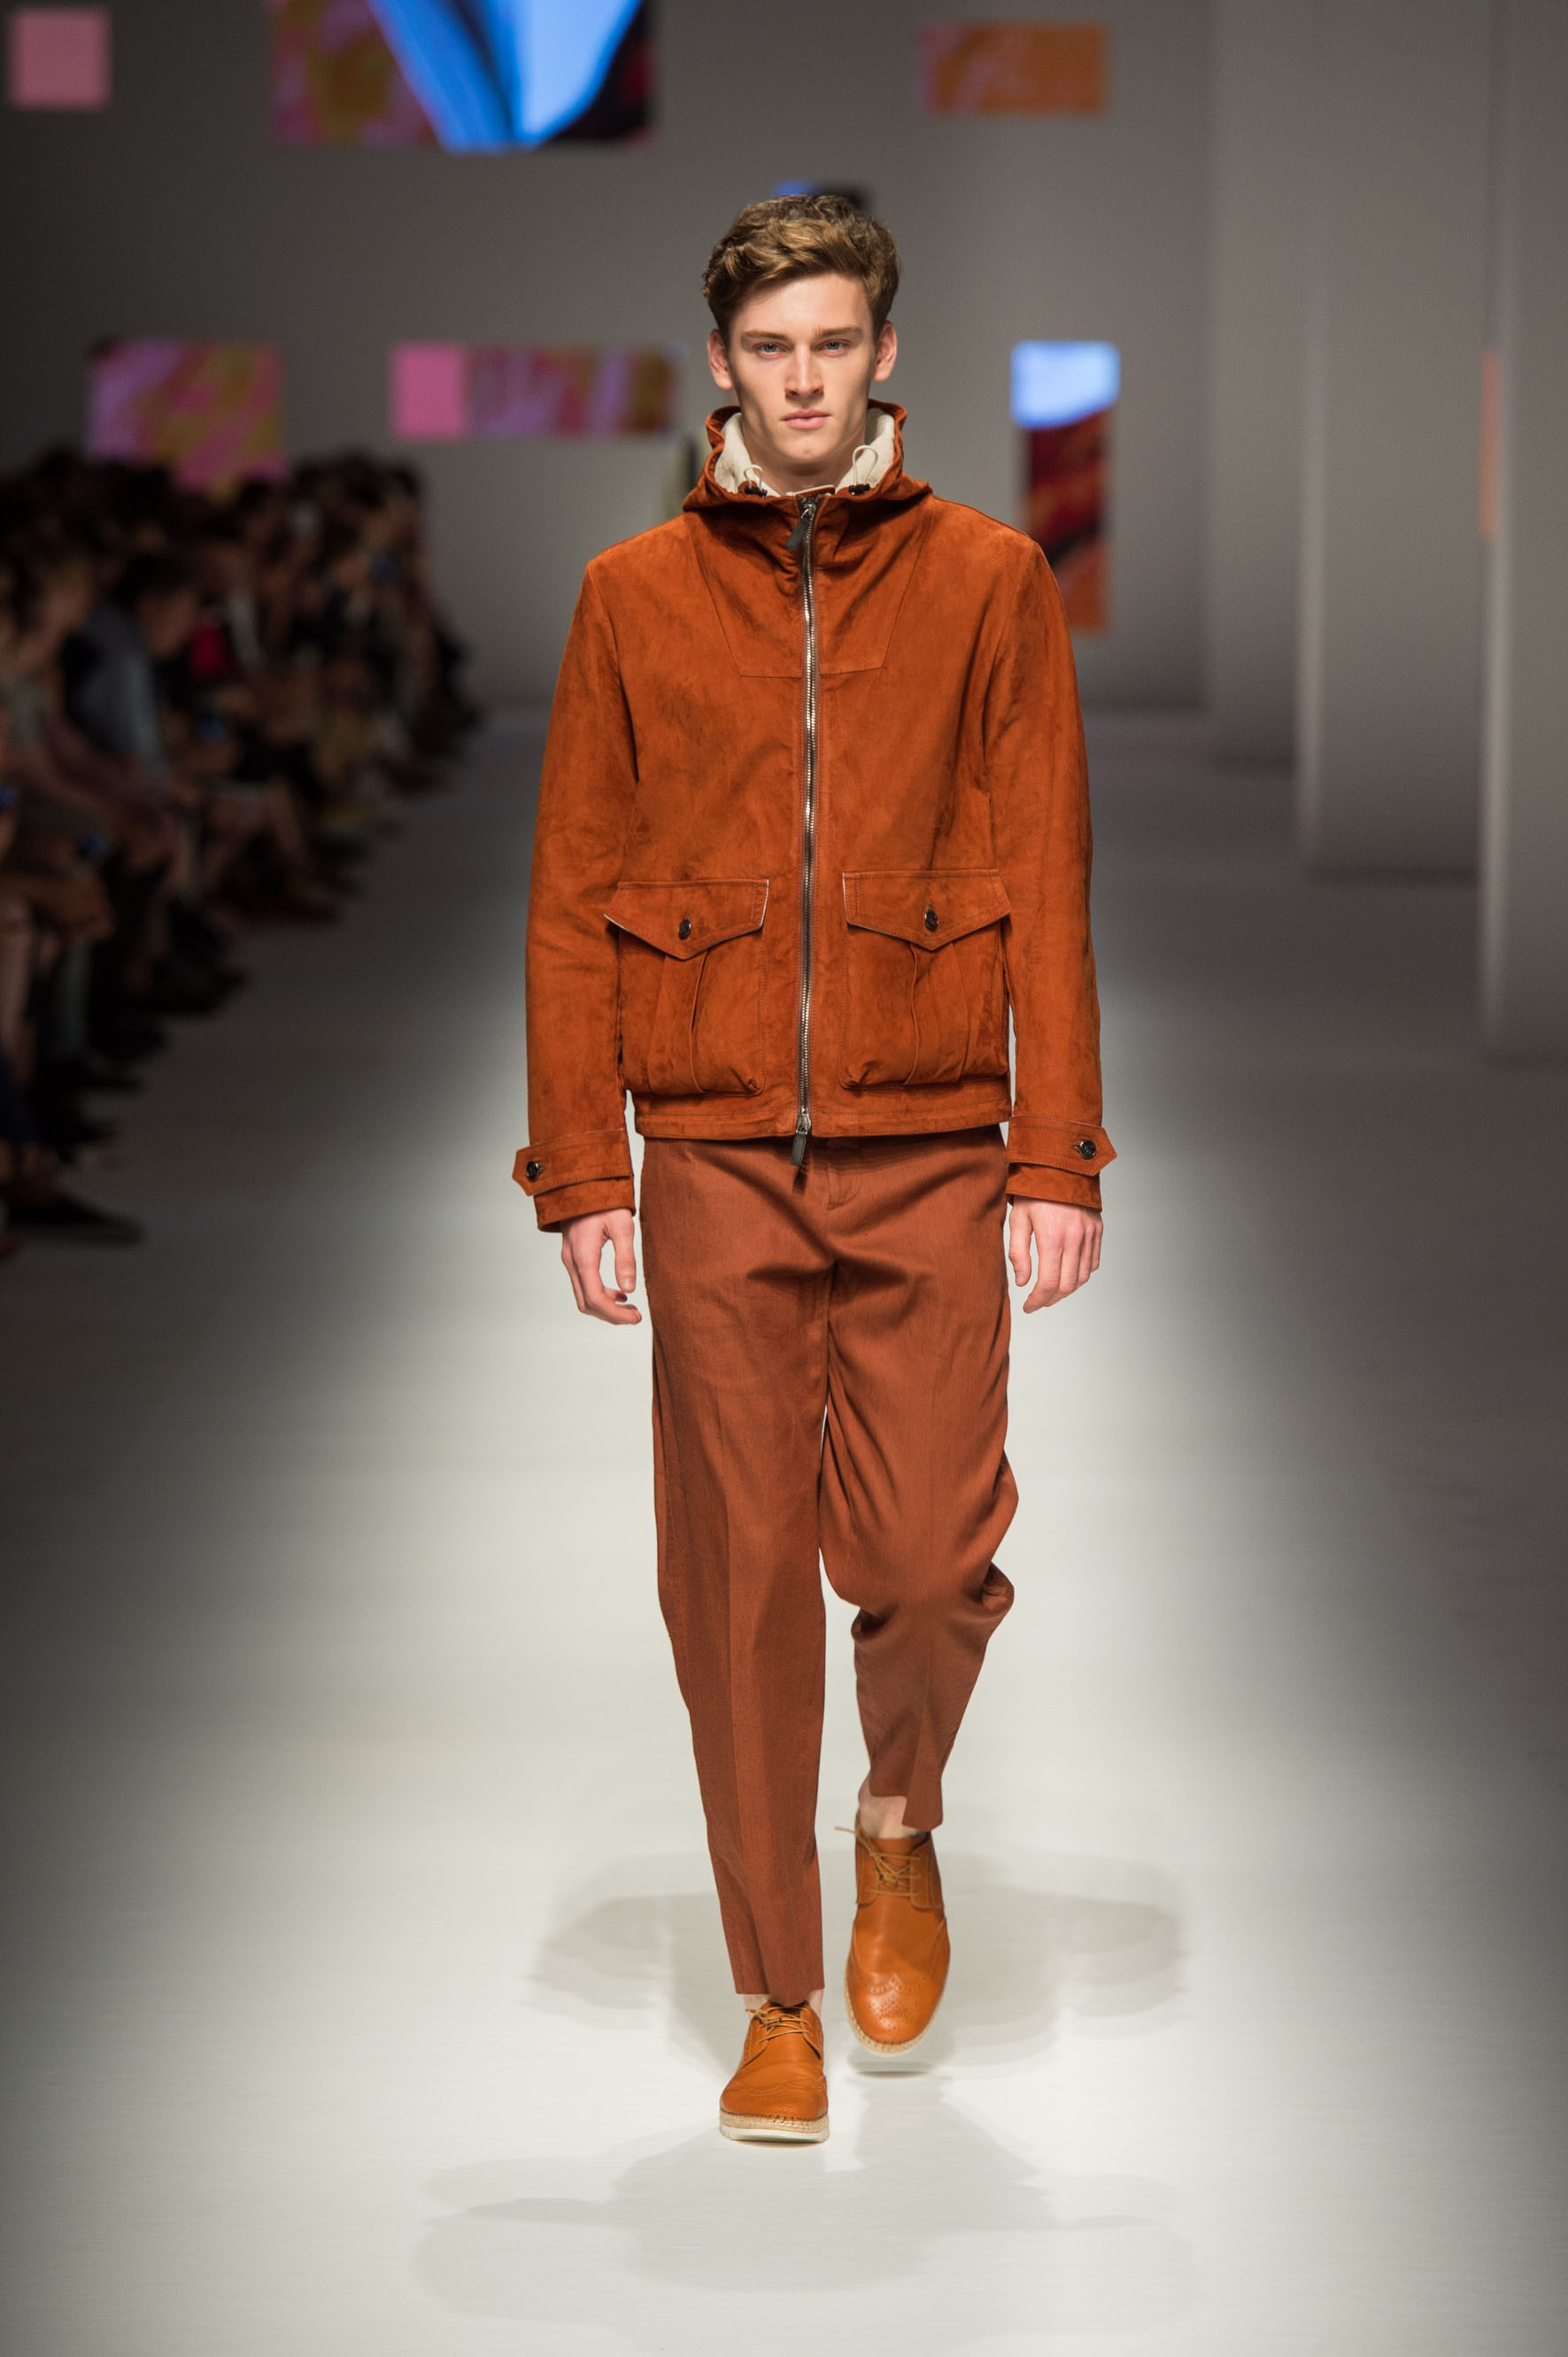 Unlined jacket with fixed hood in nubuck and linen, pants with removable belt, double-layer shirt, calfskin espadrilles